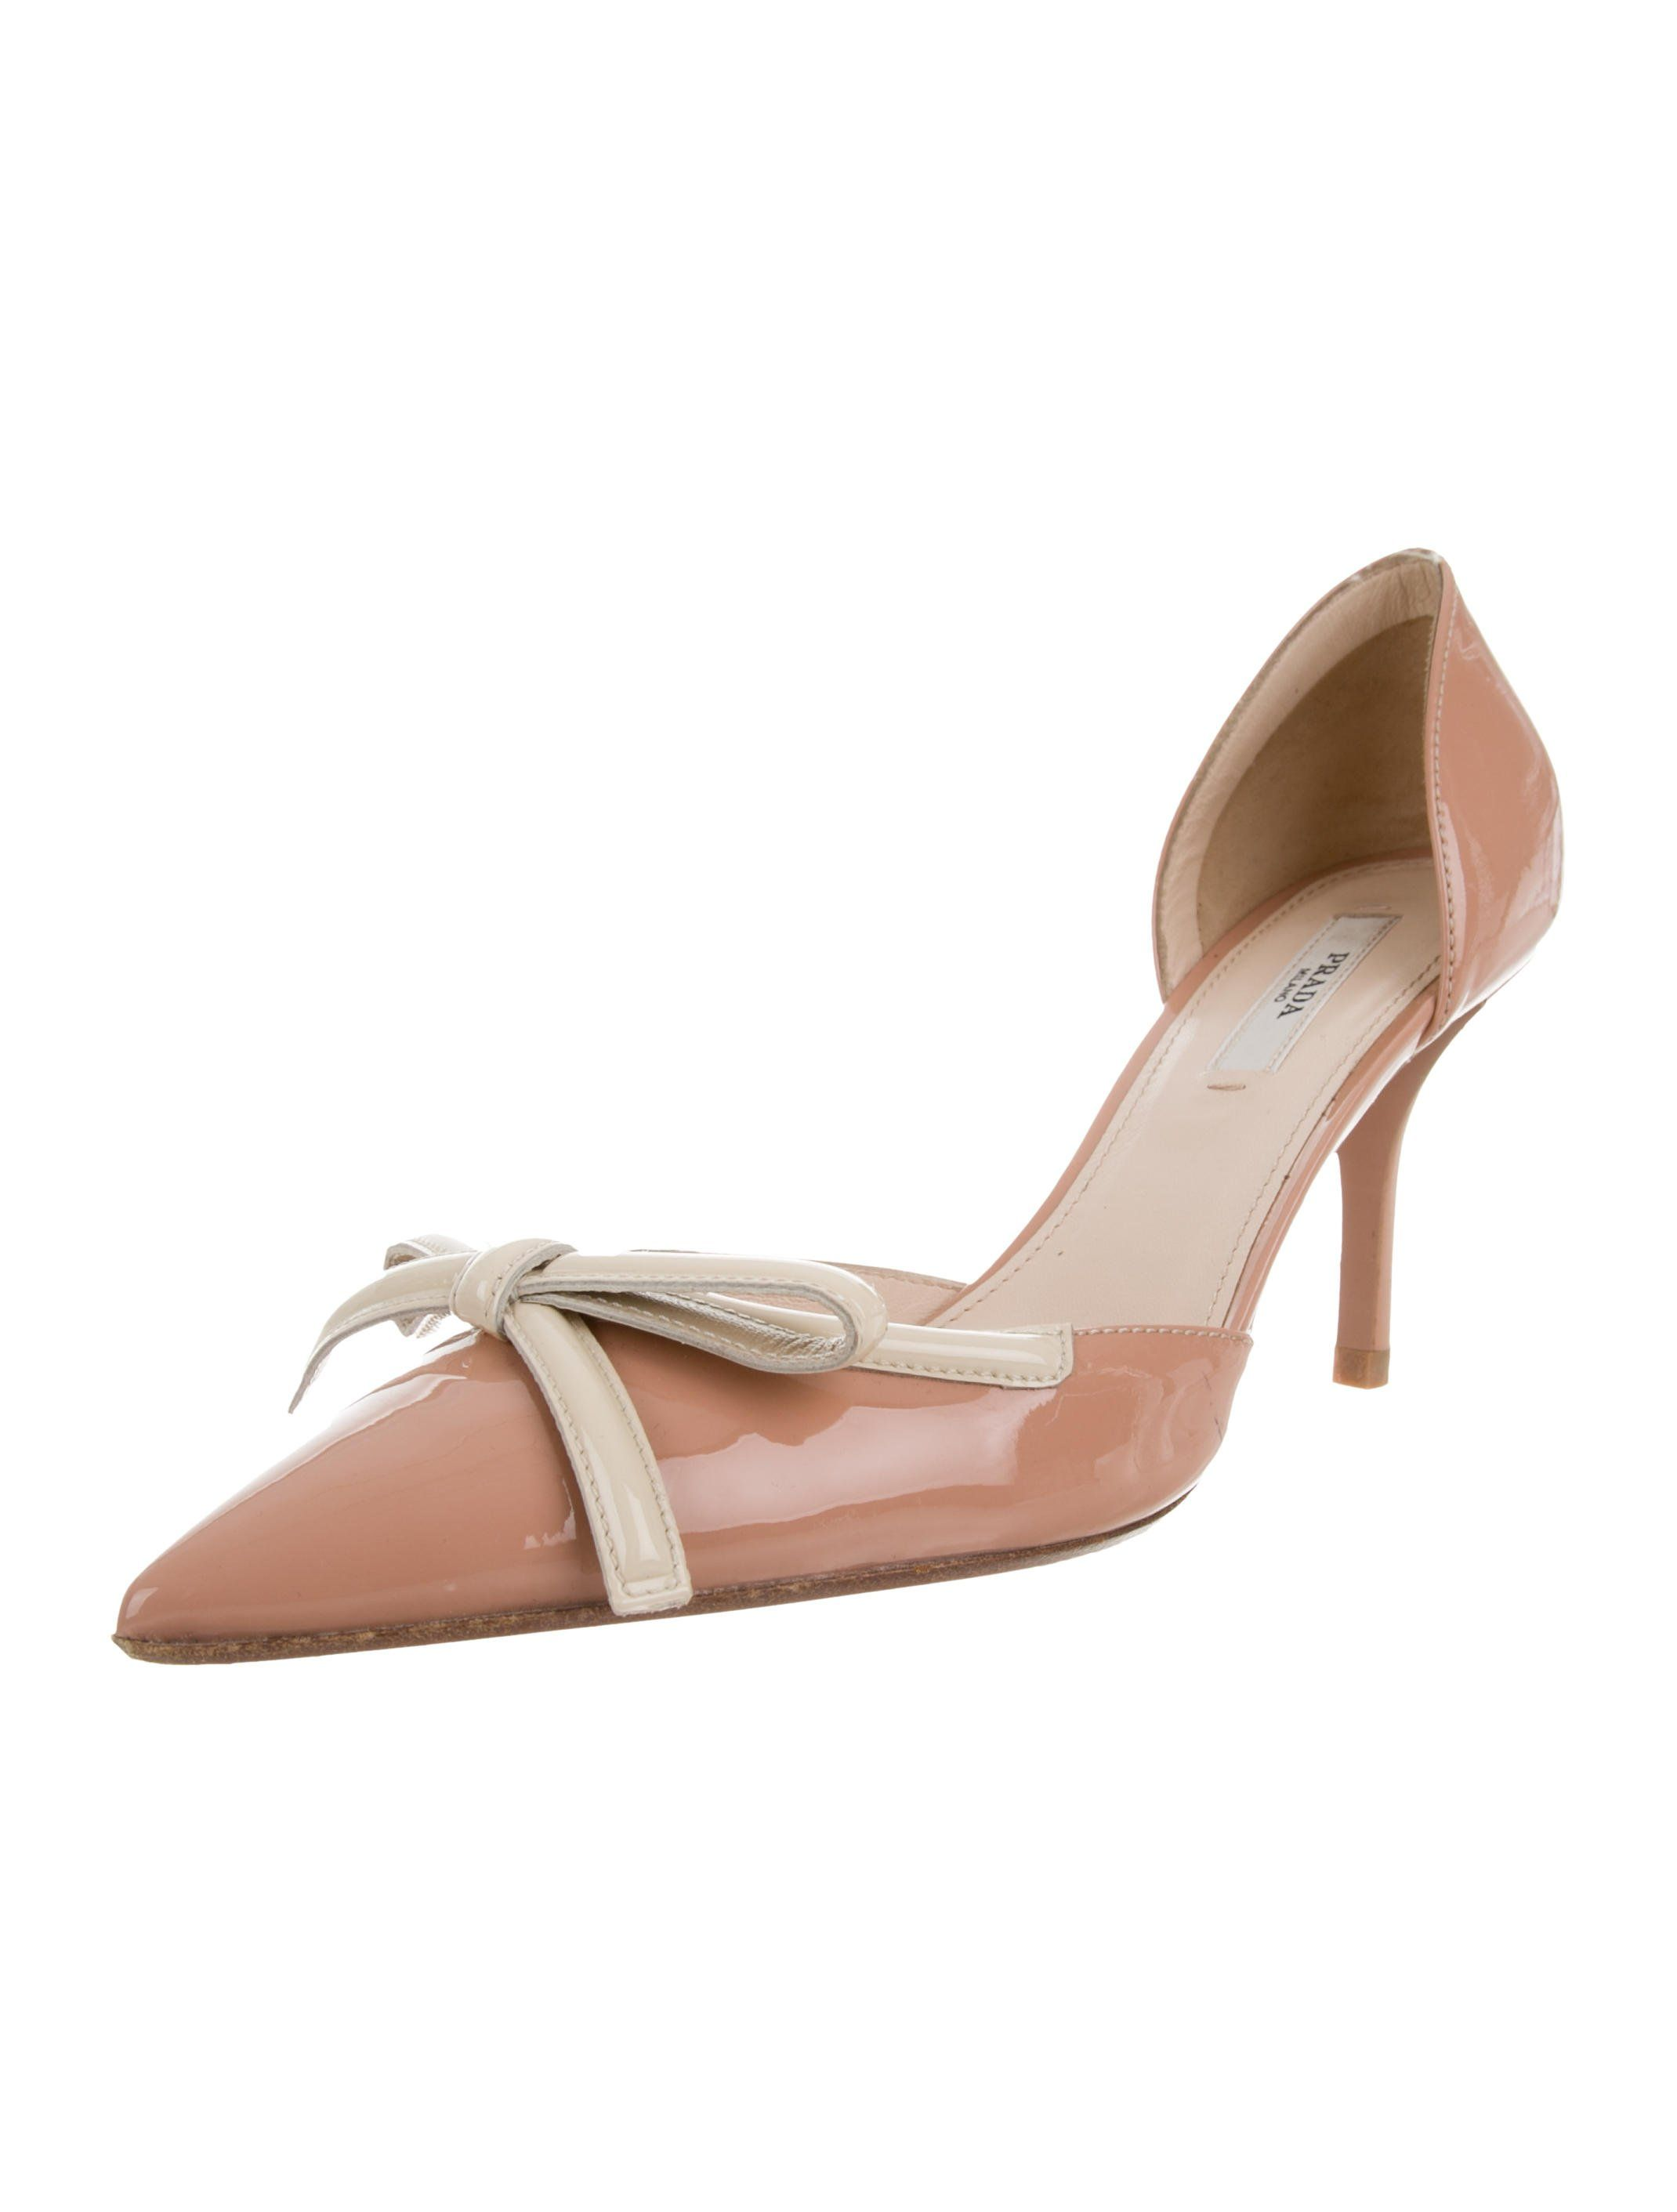 a092370689 Tan and beige patent leather Prada pointed-toe pumps with bow accents at  uppers and covered heels. Includes dust bag.